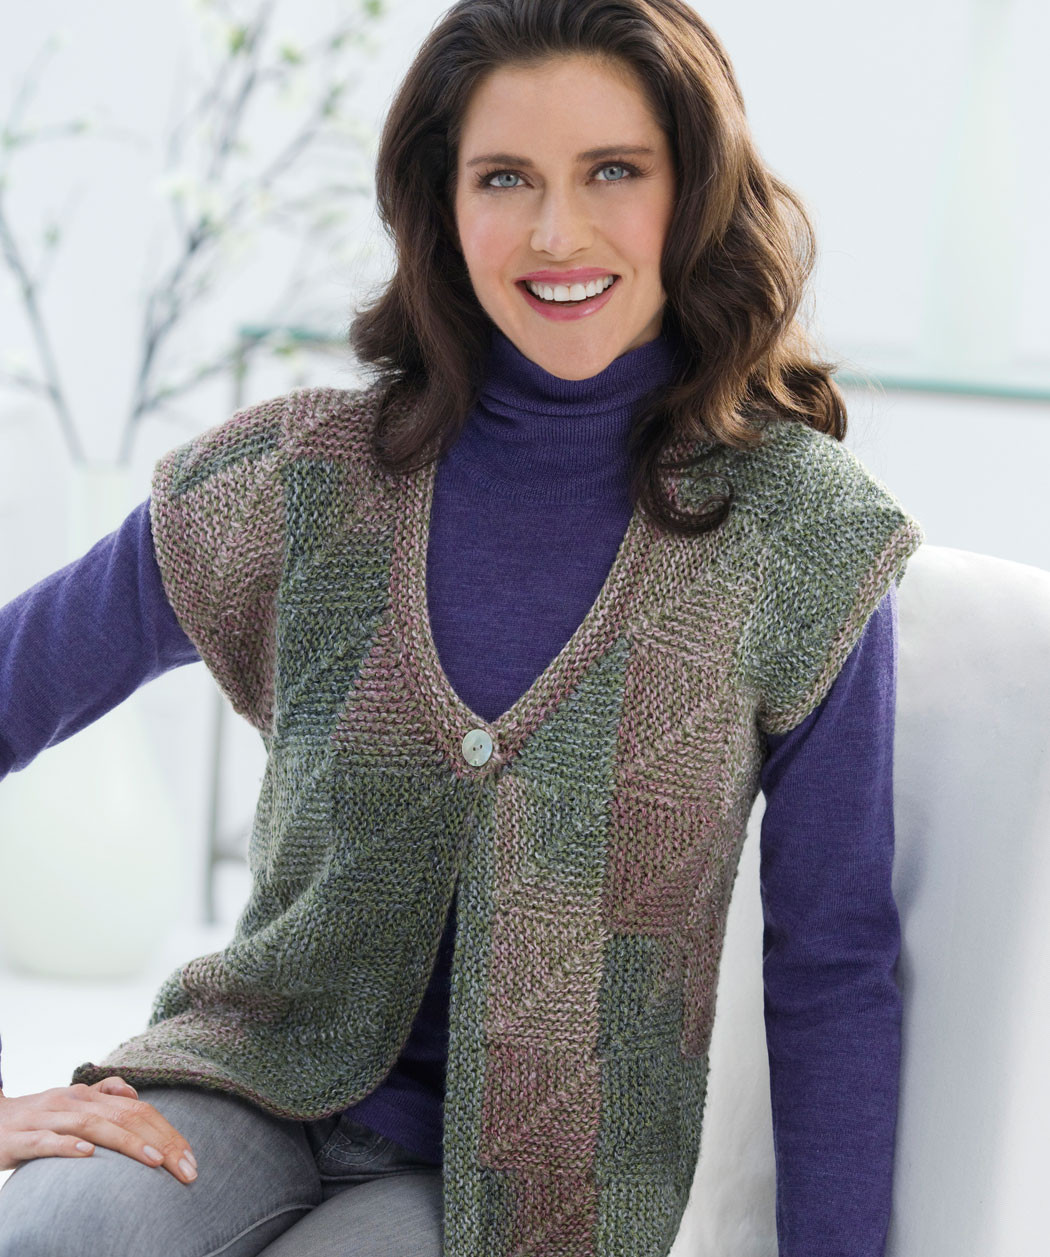 Luxury Knitted Vest Patterns Free Knitting Of Charming 40 Pics Free Knitting